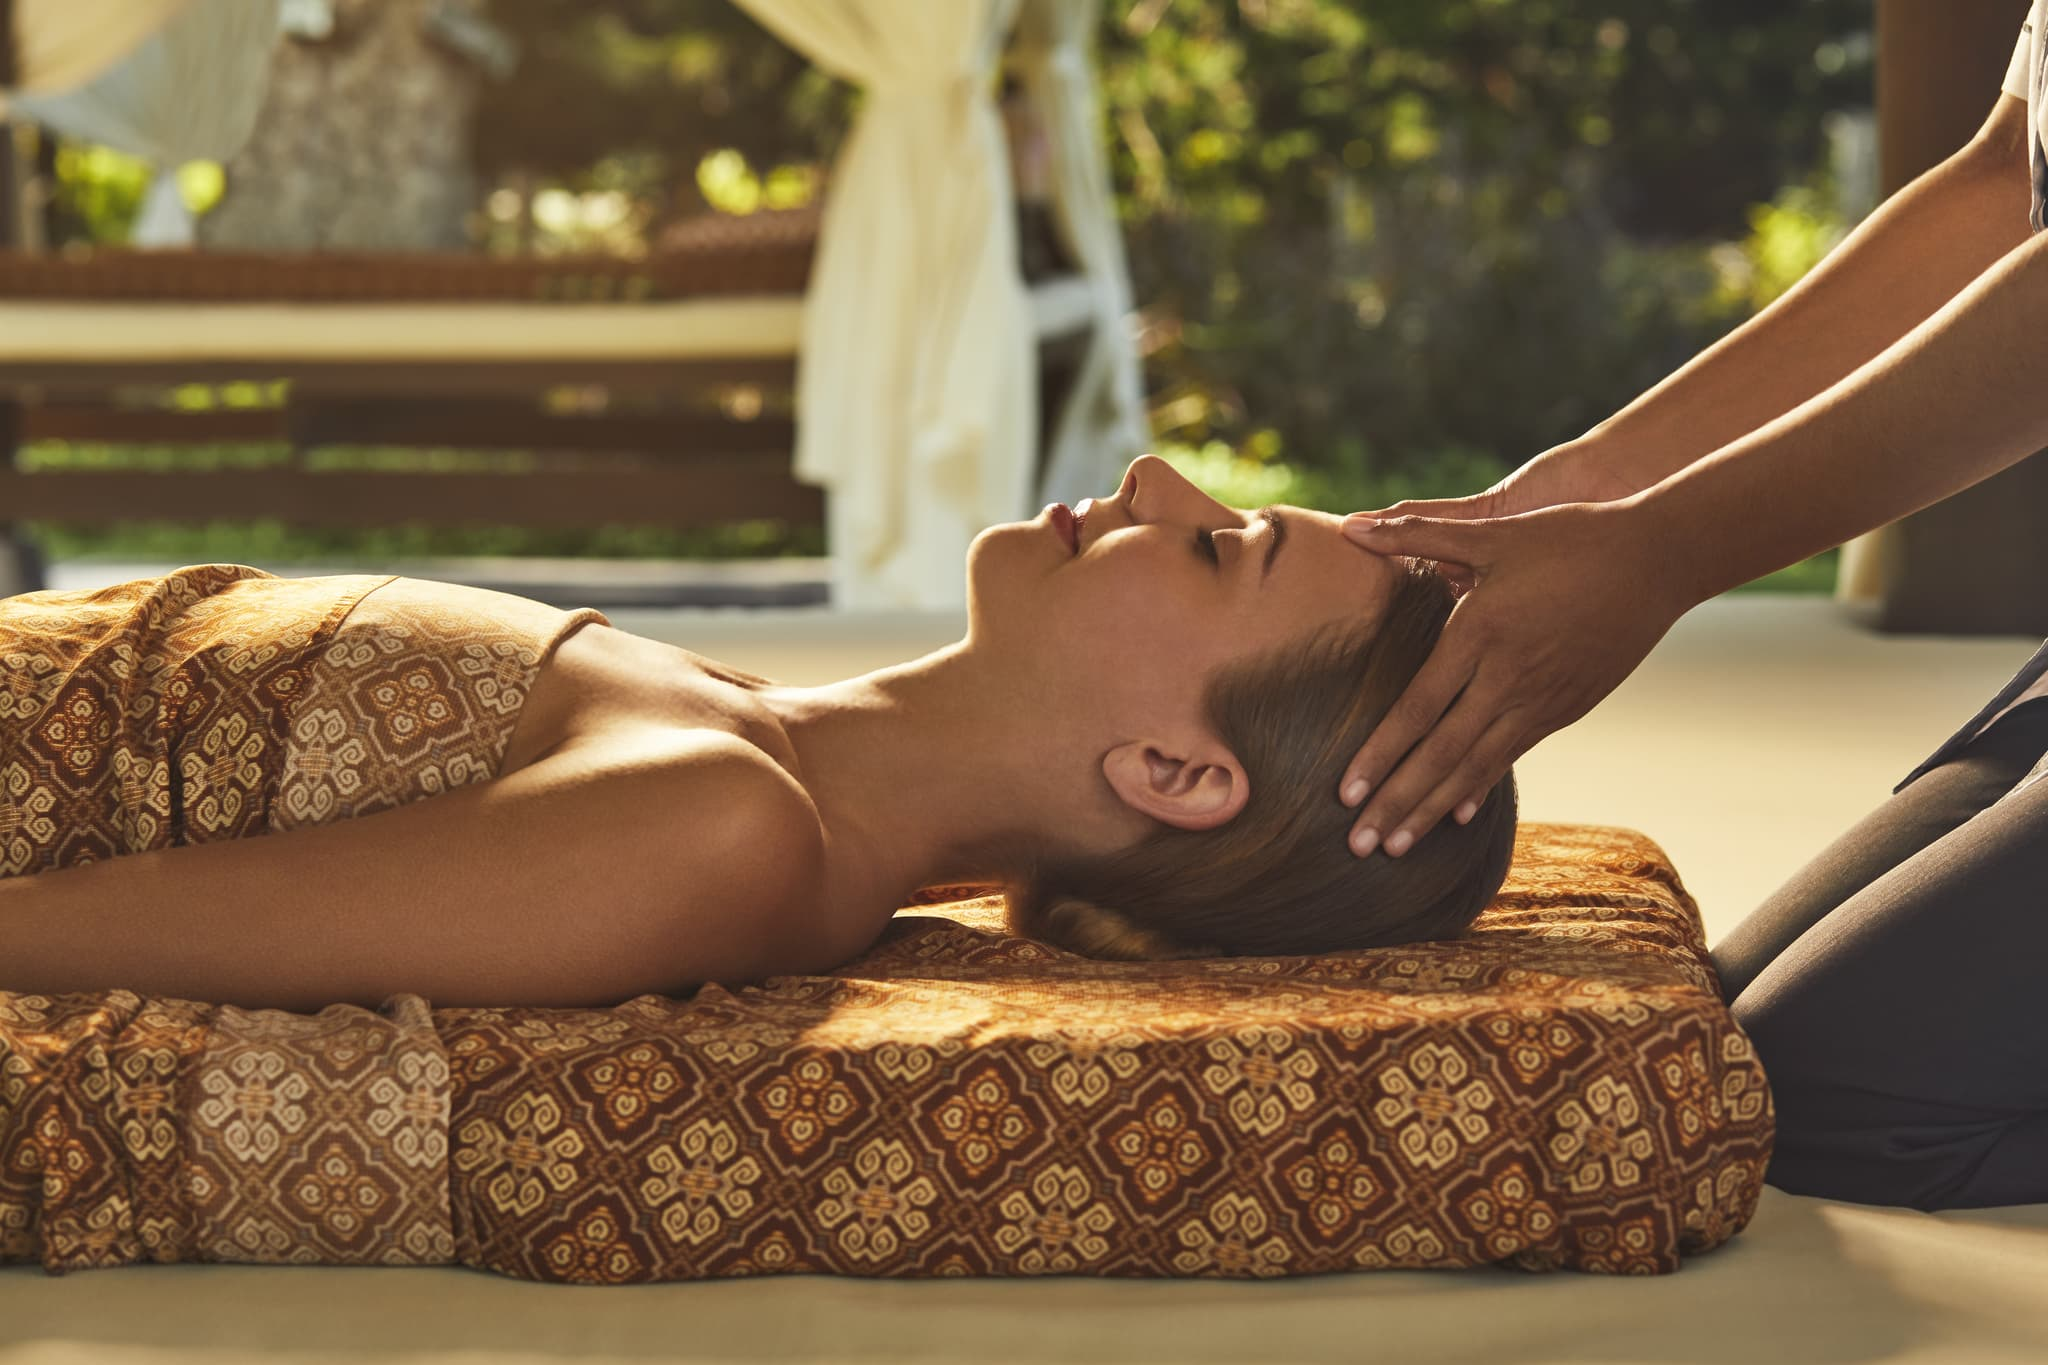 Spa Voucher Sheraton Senggigi Beach Resort - Lombok Traditional Massage 60 minutes voucher